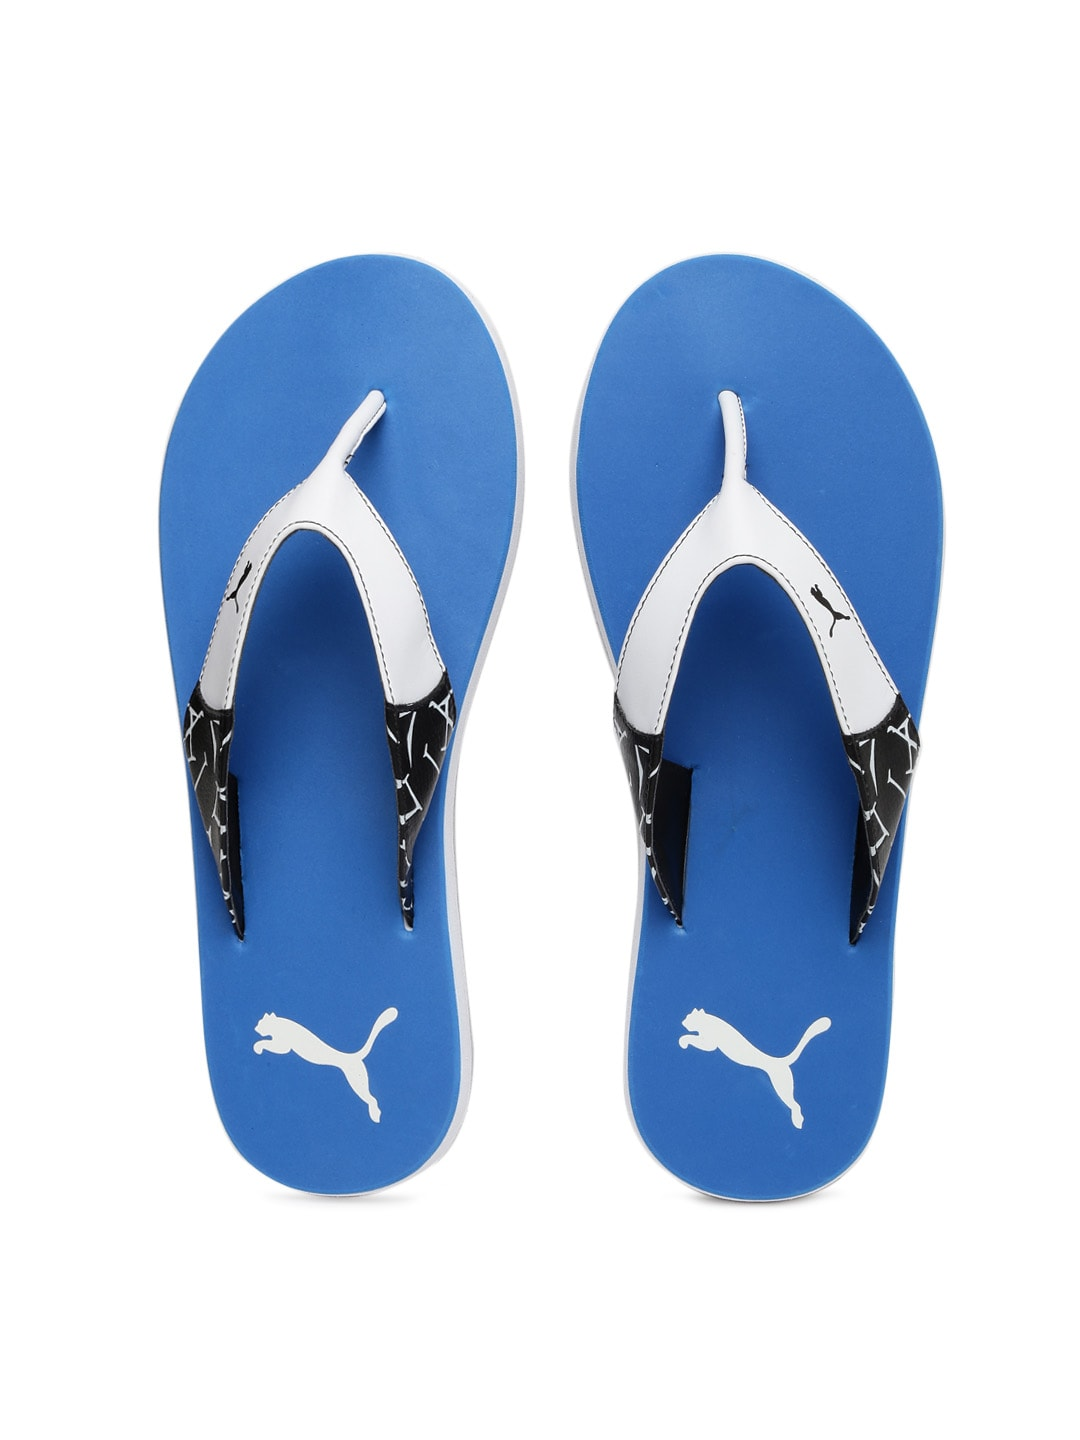 440e9fc7e6ab Men Flip Flops - Buy Men Flip Flops online in India